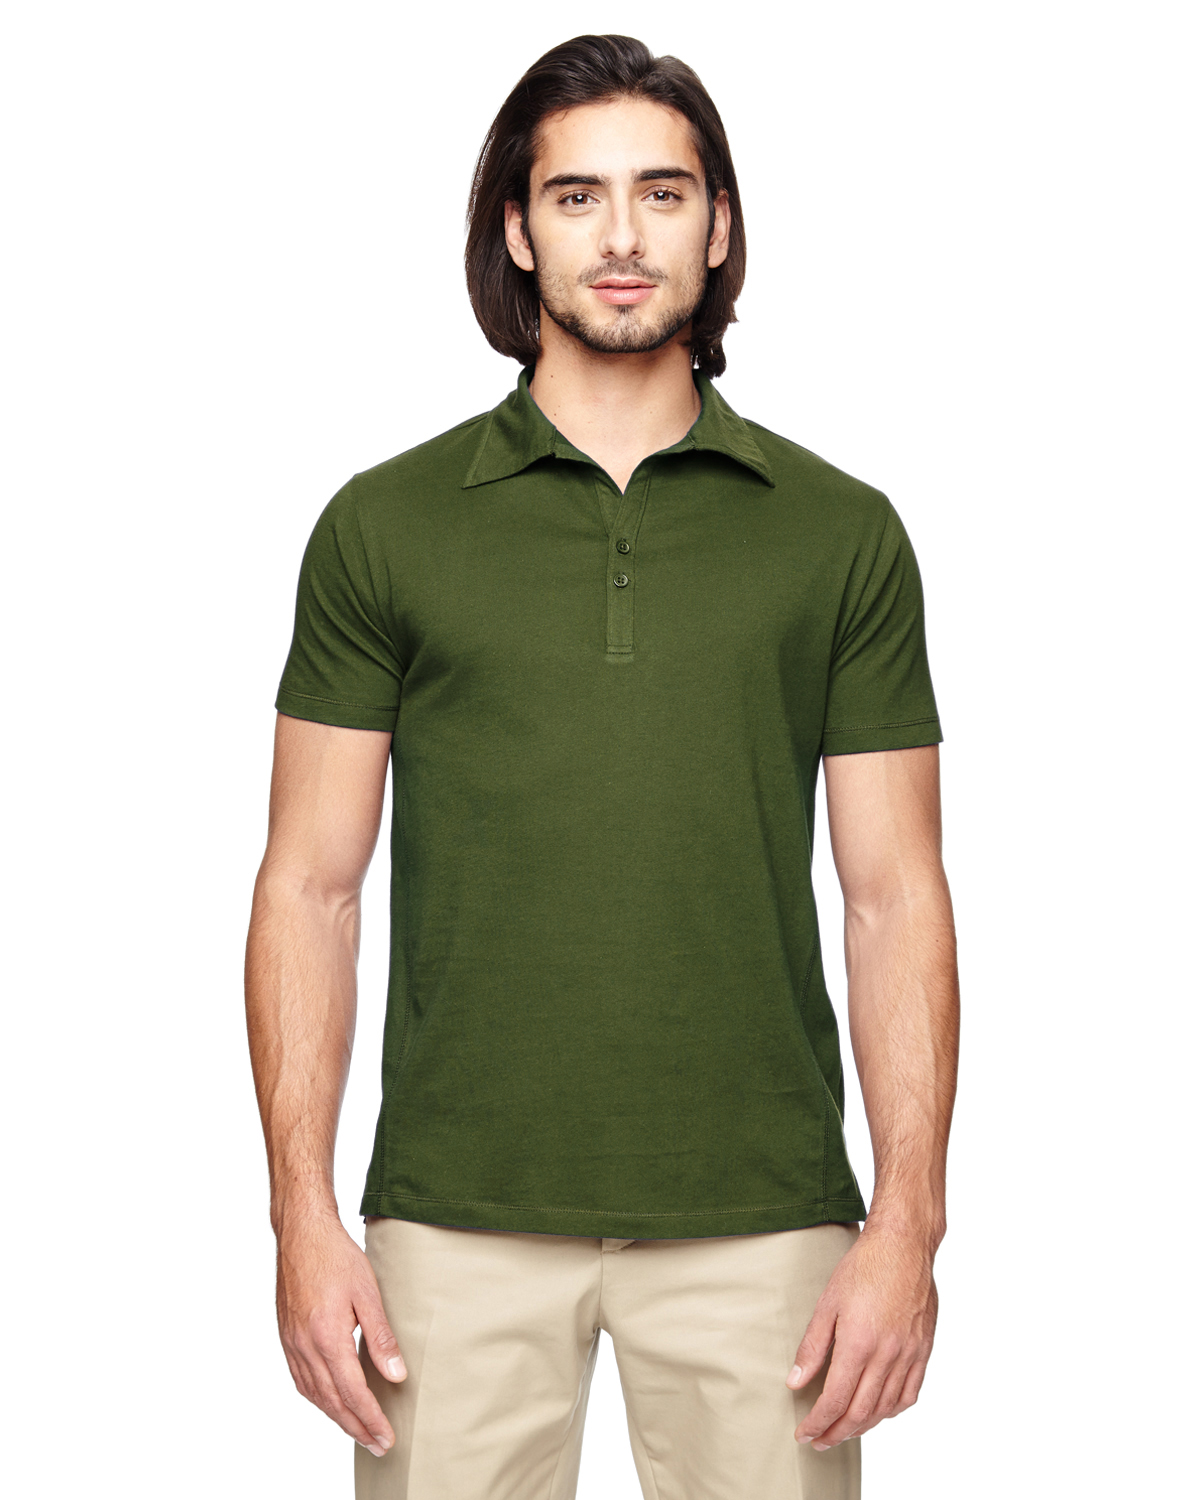 9f90d505ce6a40 Econscious EC2505 - Men s 4.4 oz. 100% Organic Cotton .